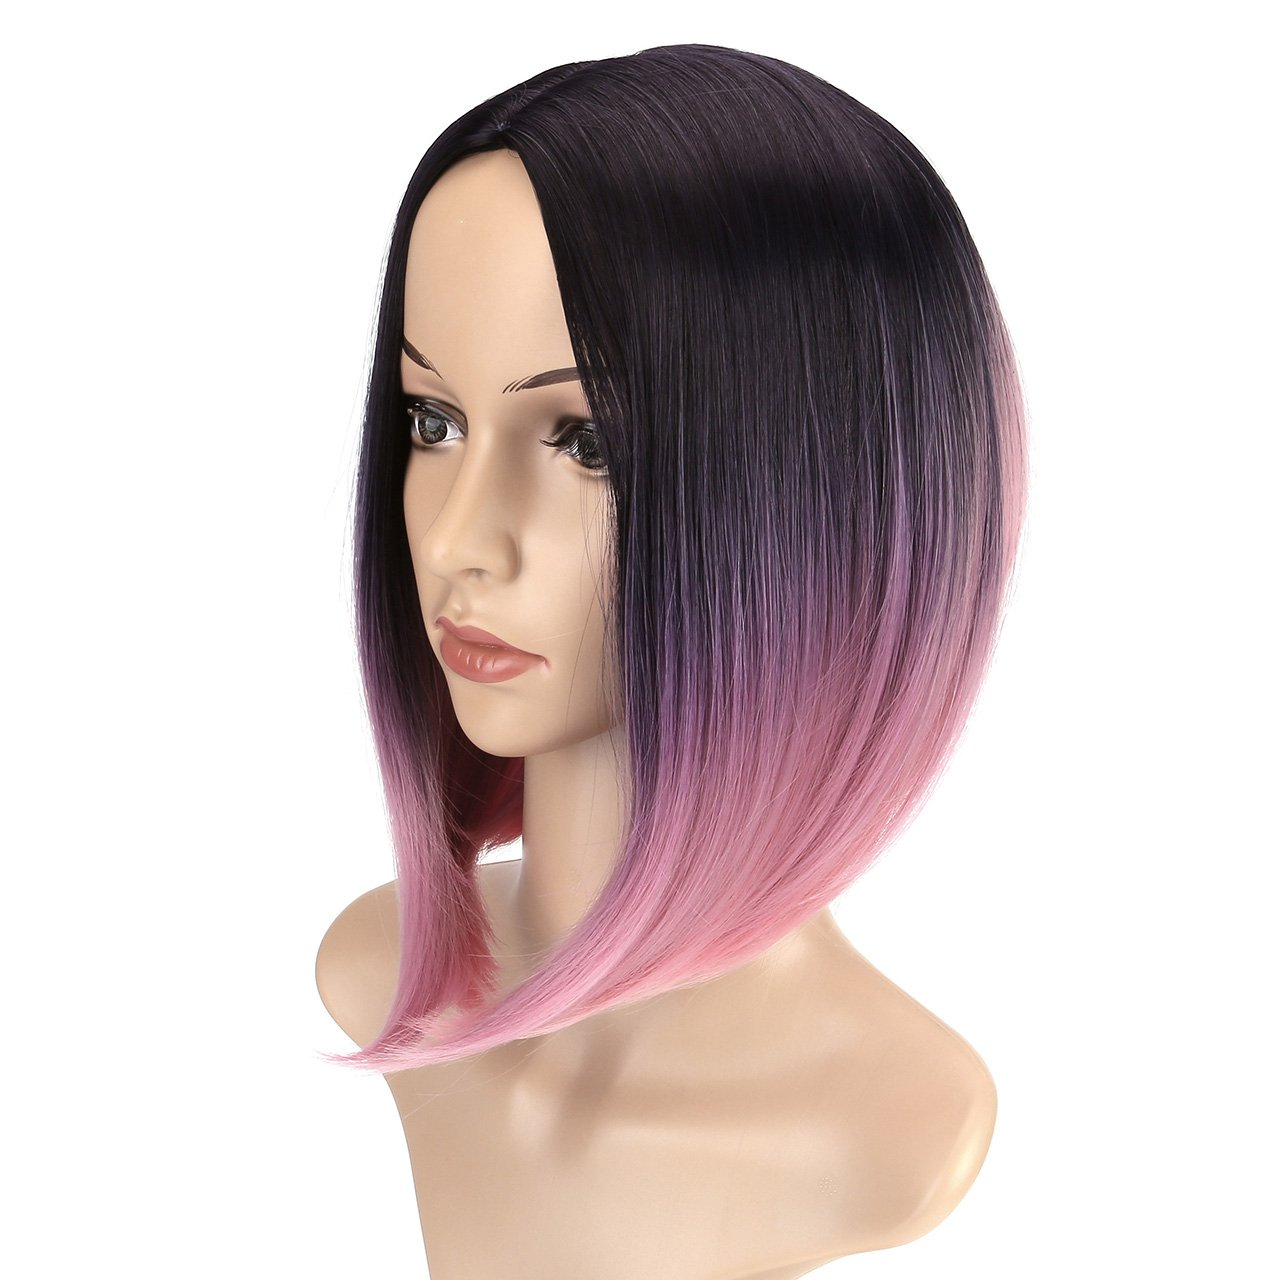 CCbeauty Ombre Bob Wig Straight With Middle Part Short Fashion Wig Cosplay Pink Ombre Wig Full Head Synthetic Wig for Women 14 Inches by CCbeauty (Image #2)